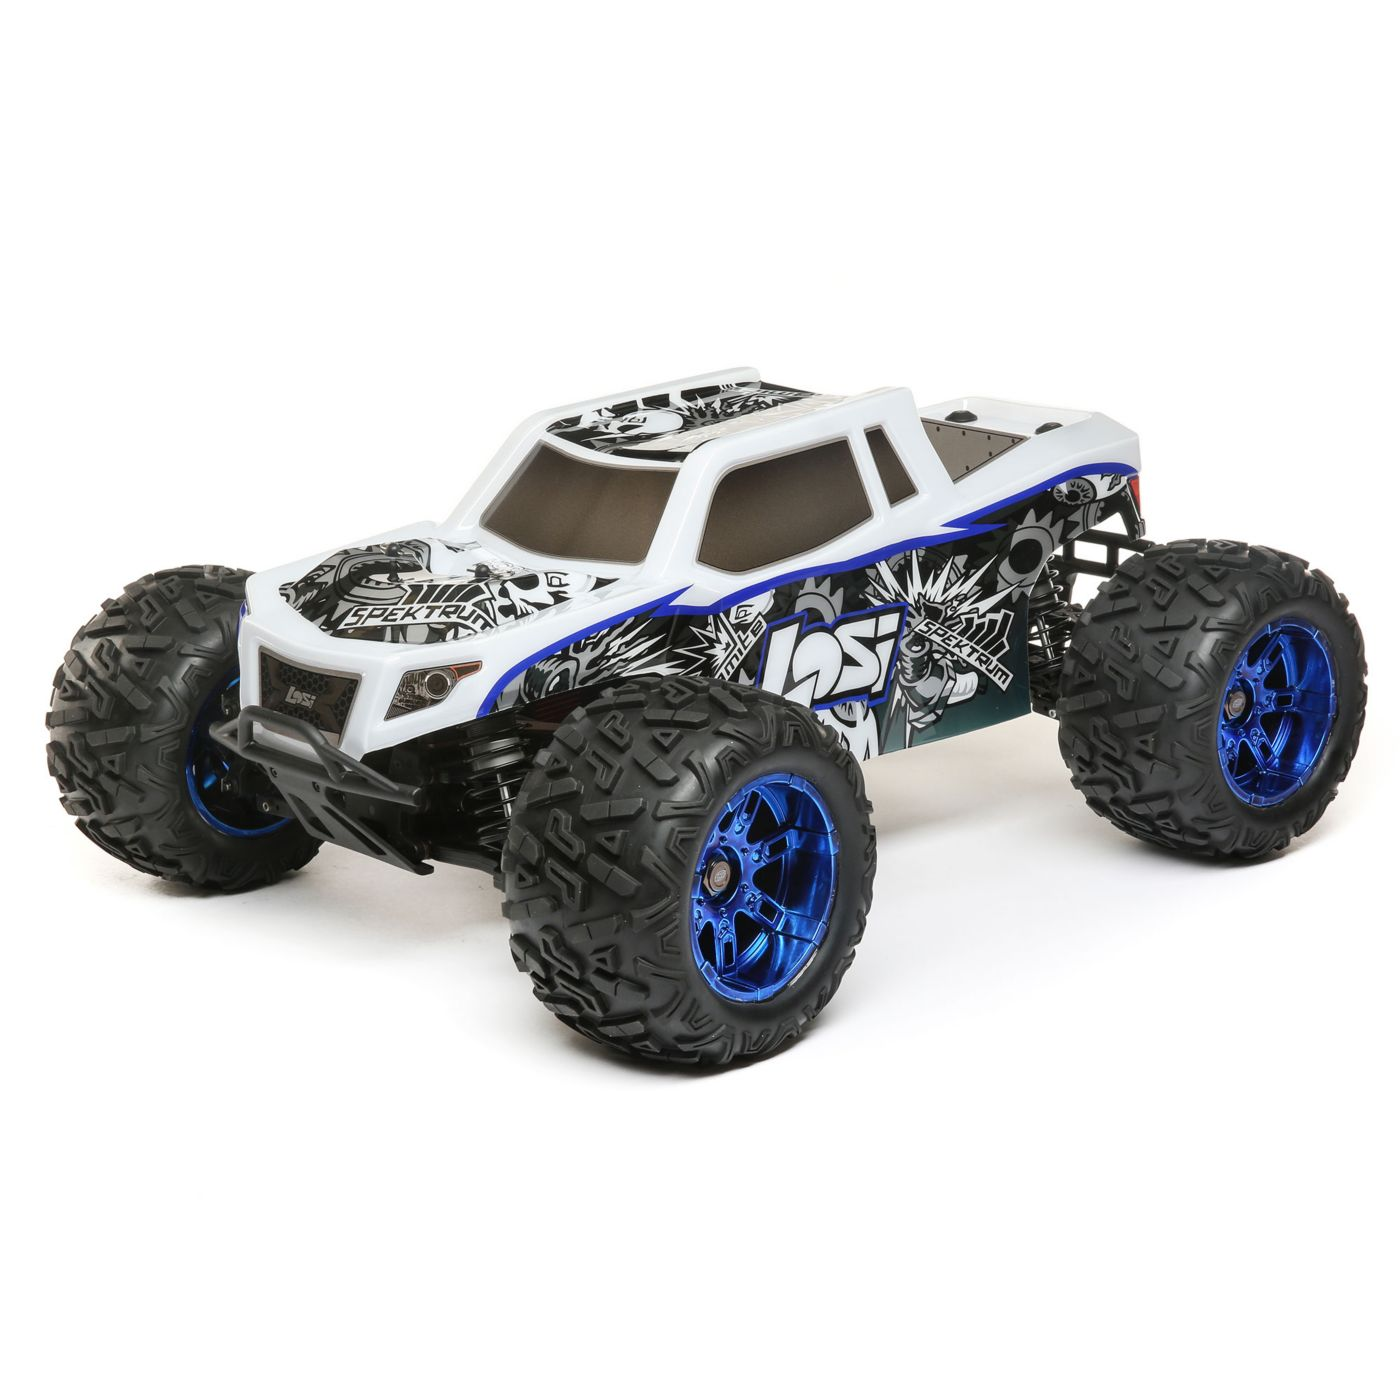 Losi Lets Loose their Latest Creation: The LST 3XL-E 1/8 Monster Truck